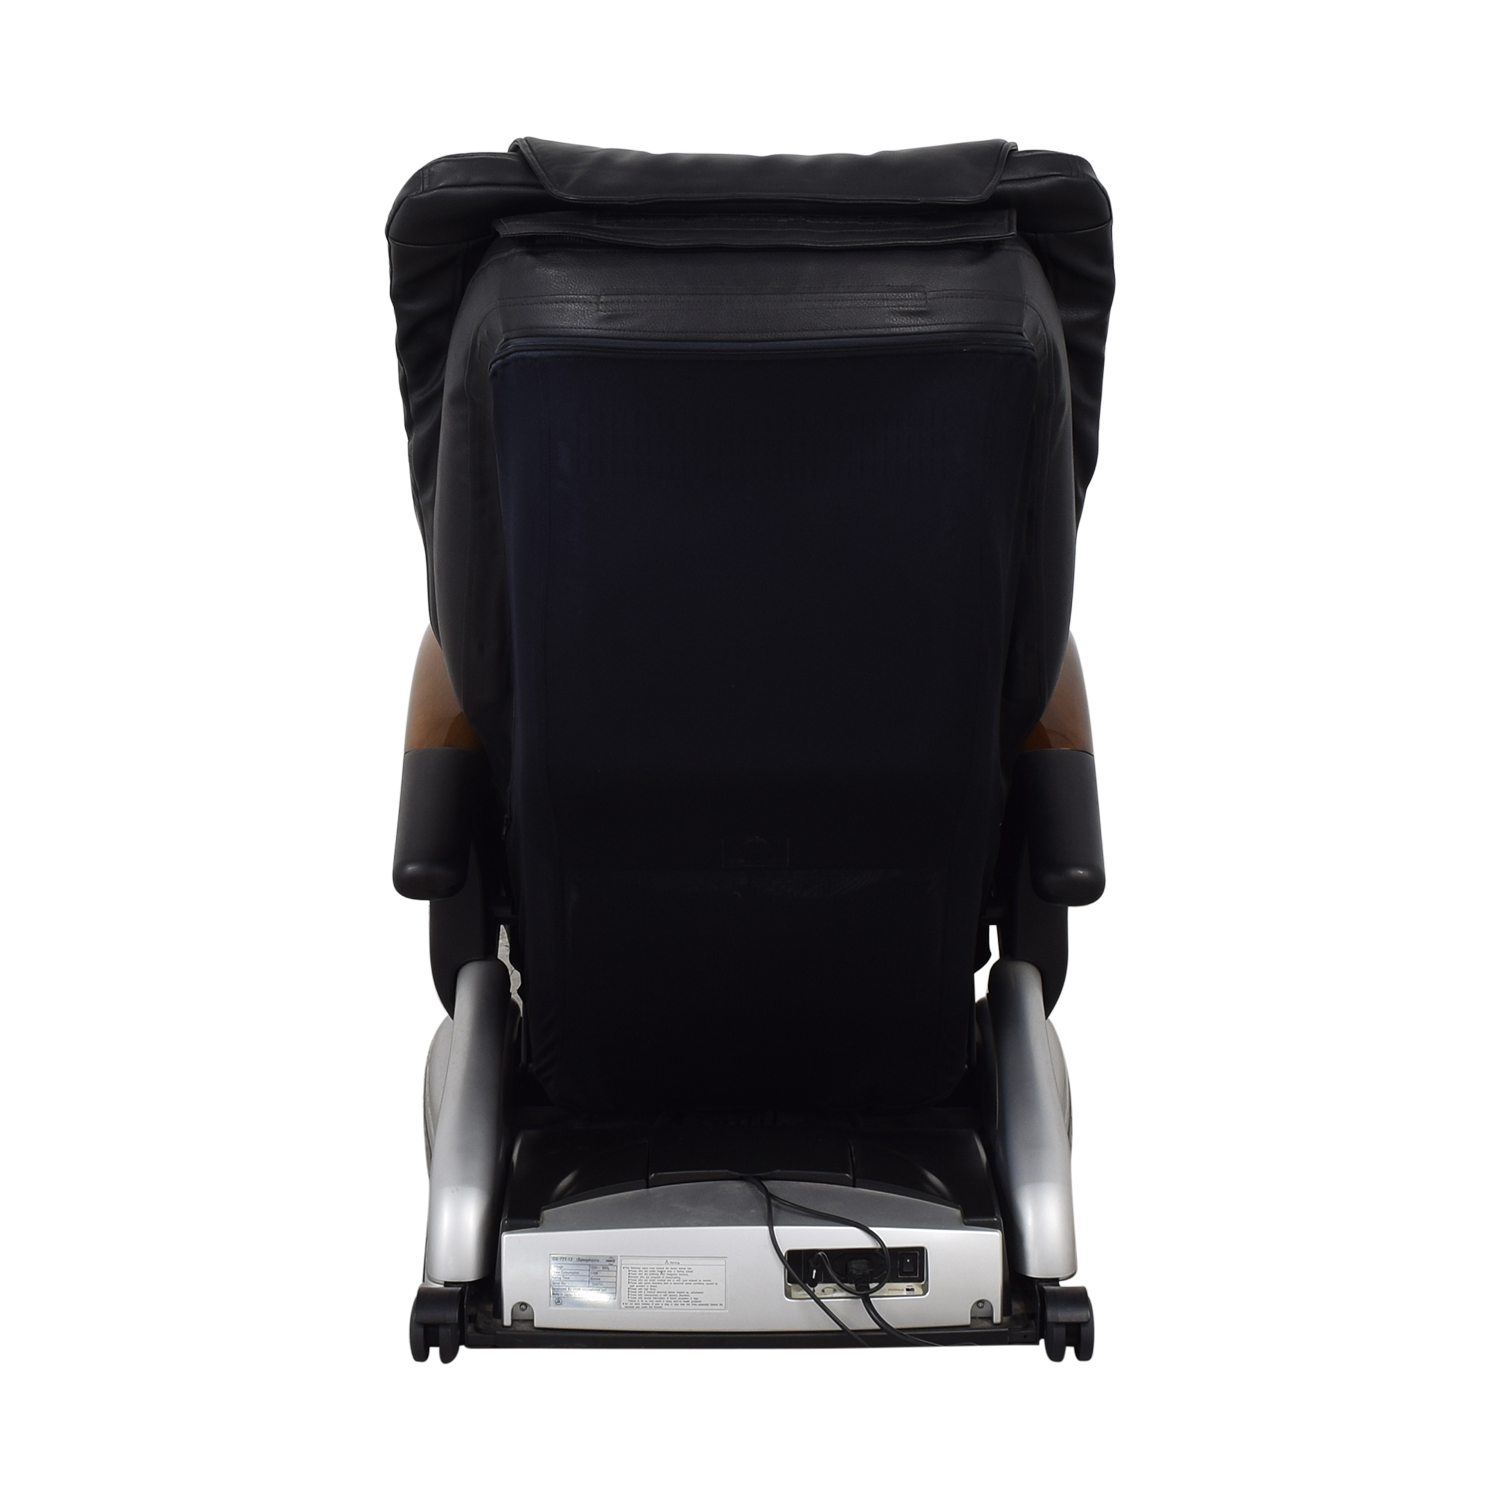 Brookstone Massage Chair with CD Player / Recliners